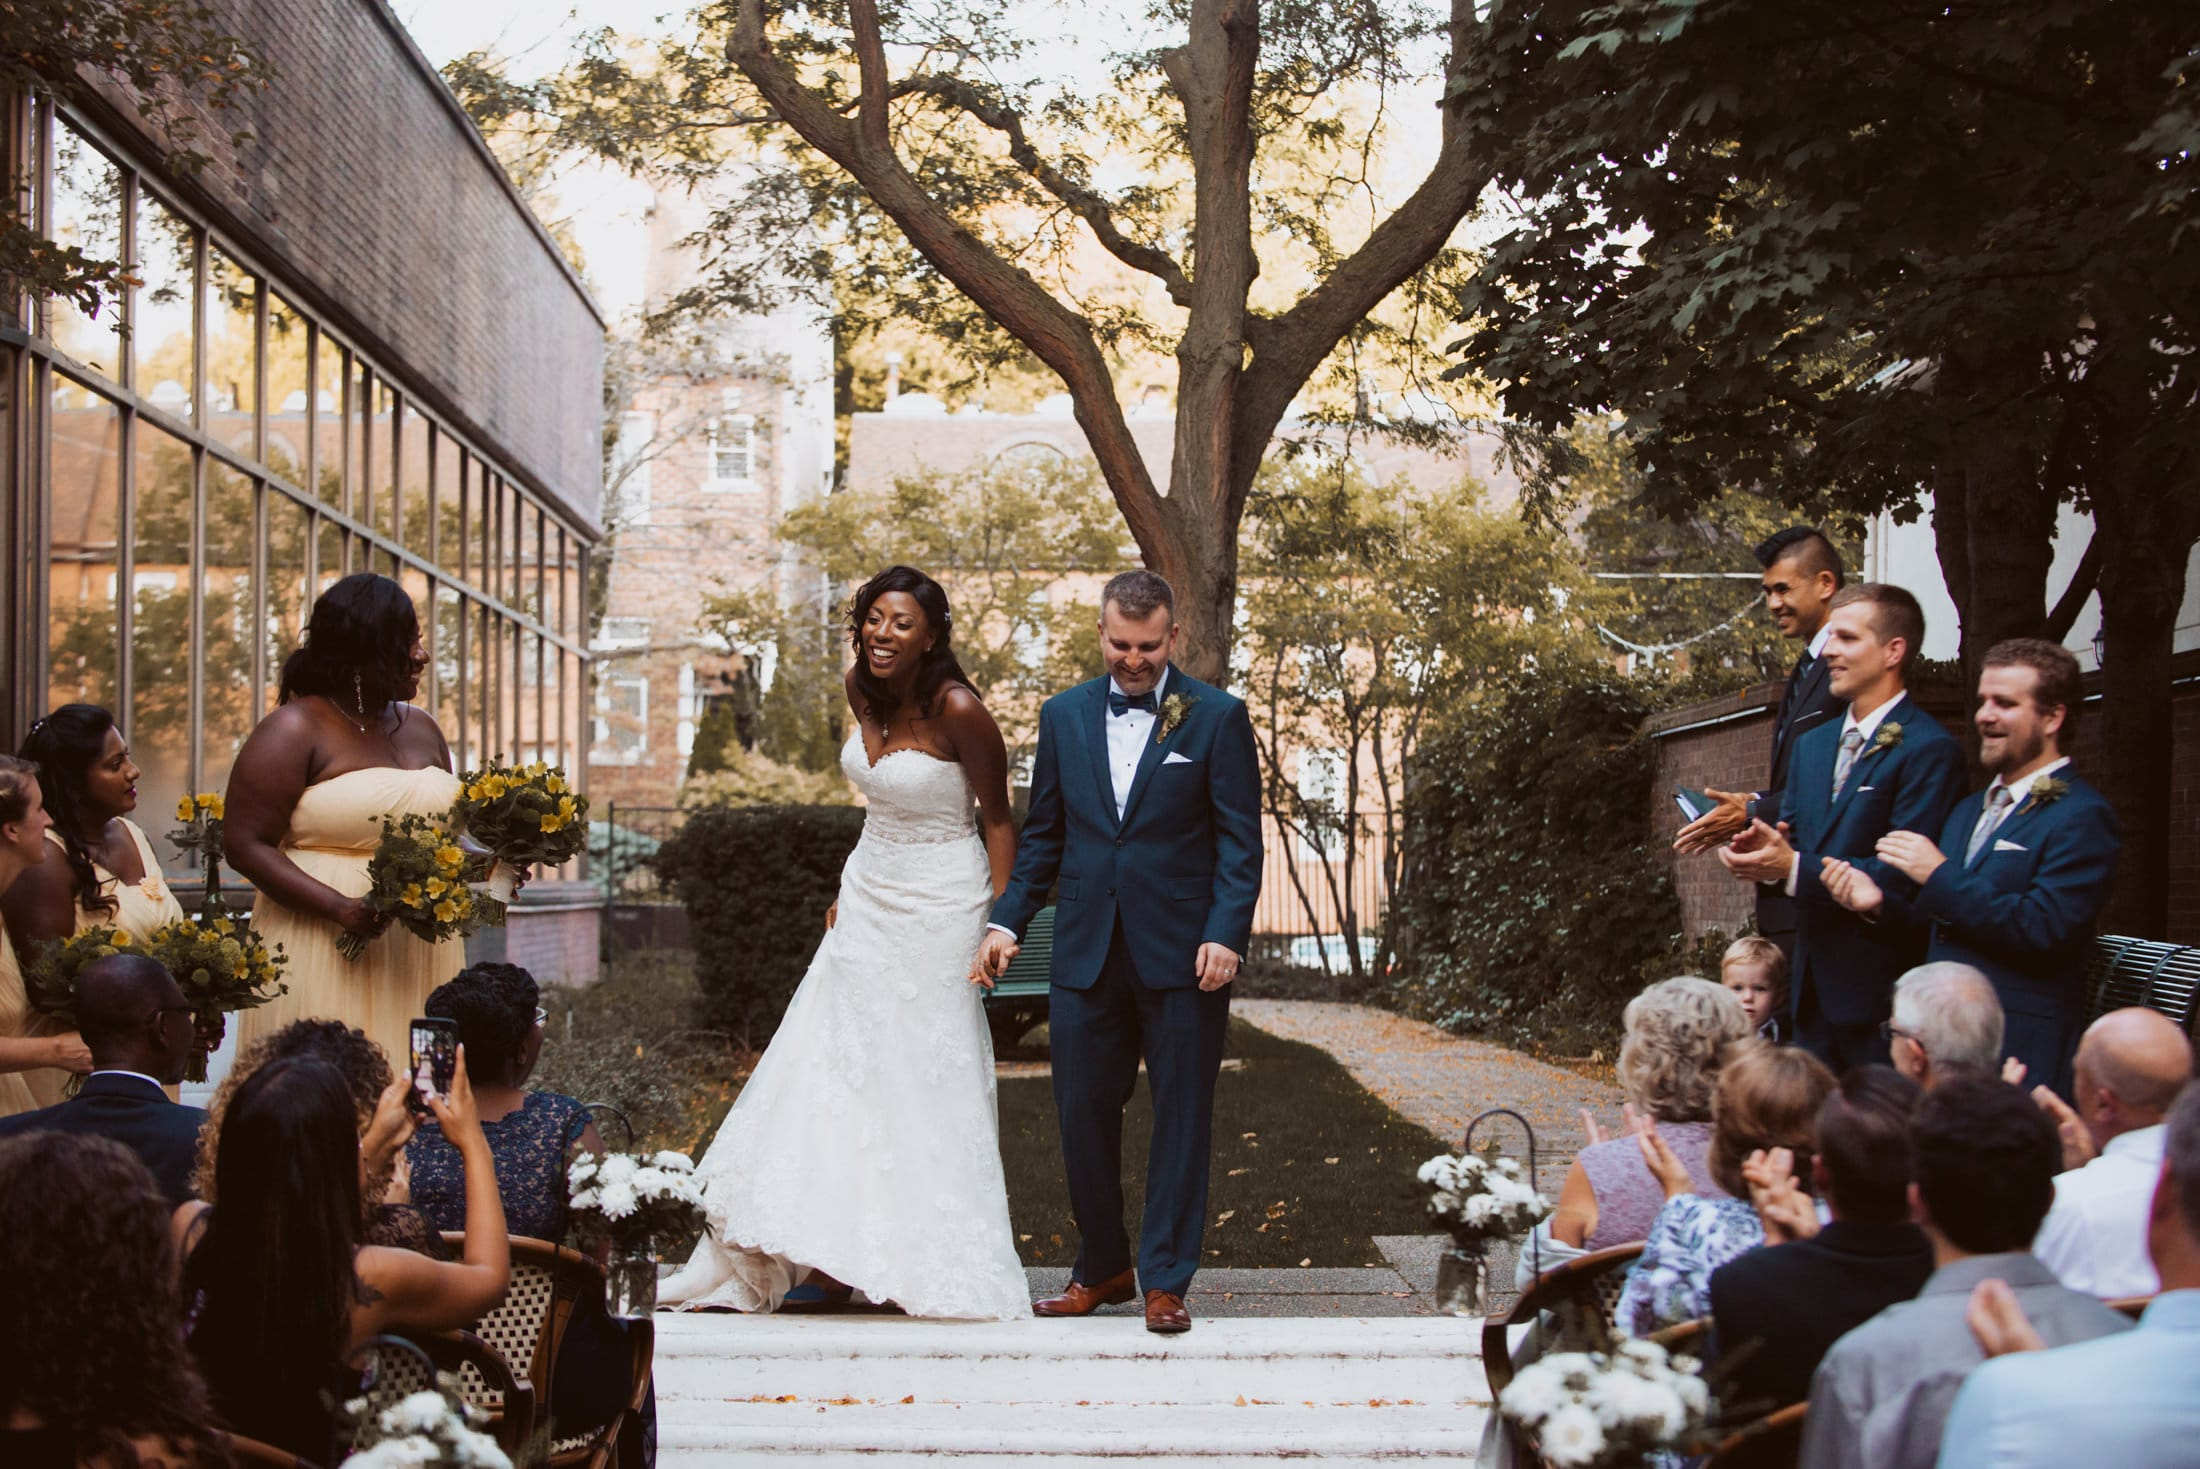 Intimate Wedding Photography For 2020 and Beyond